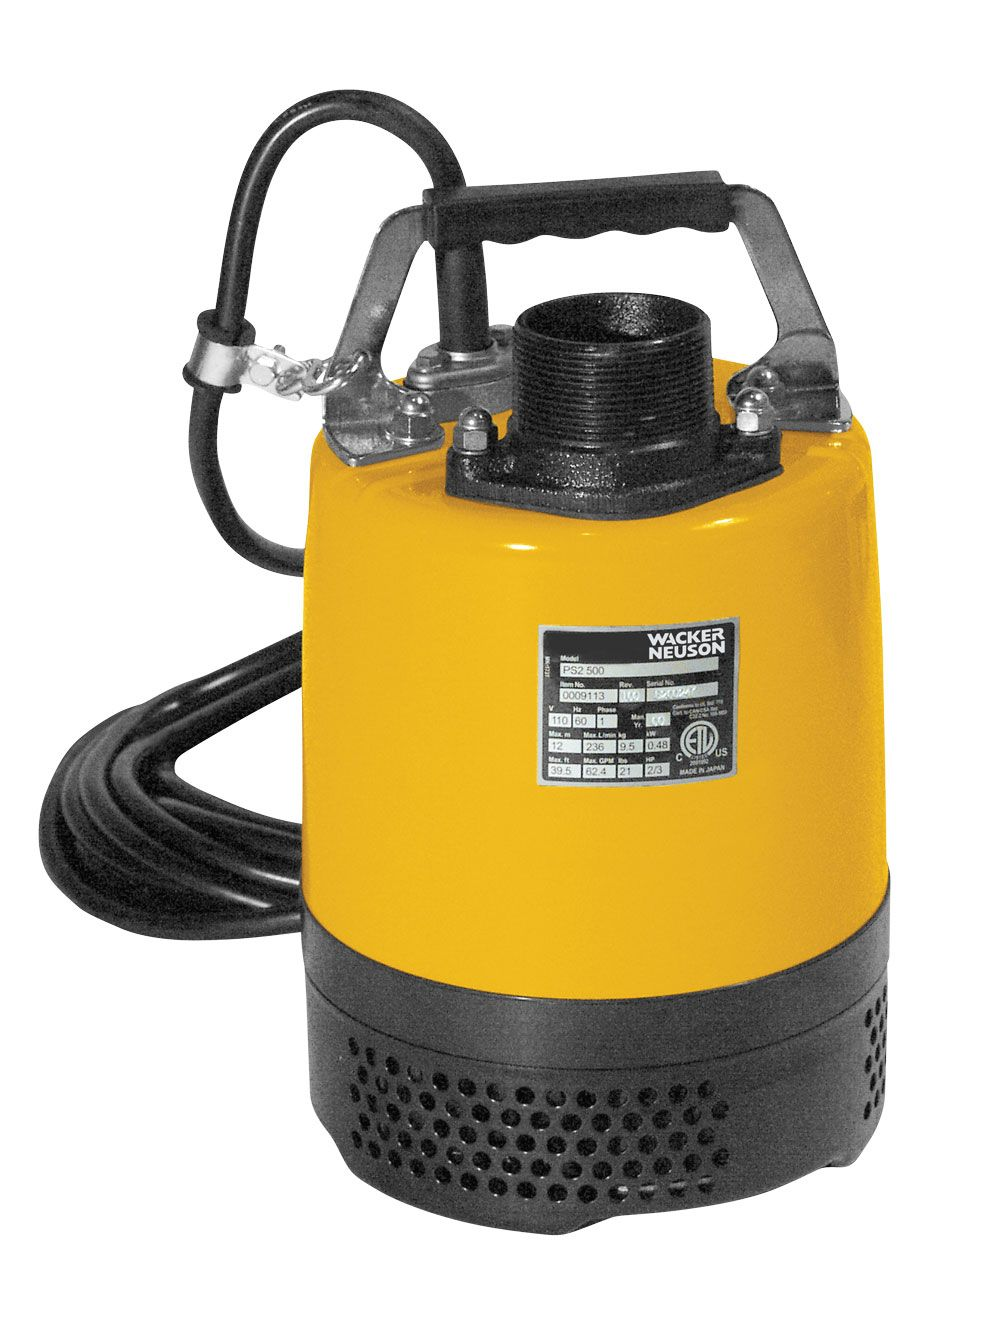 Submersible Pump For Rent Burleson 817 809 8255 Submersible Utility Pump Utility Pumps Submersible Pump